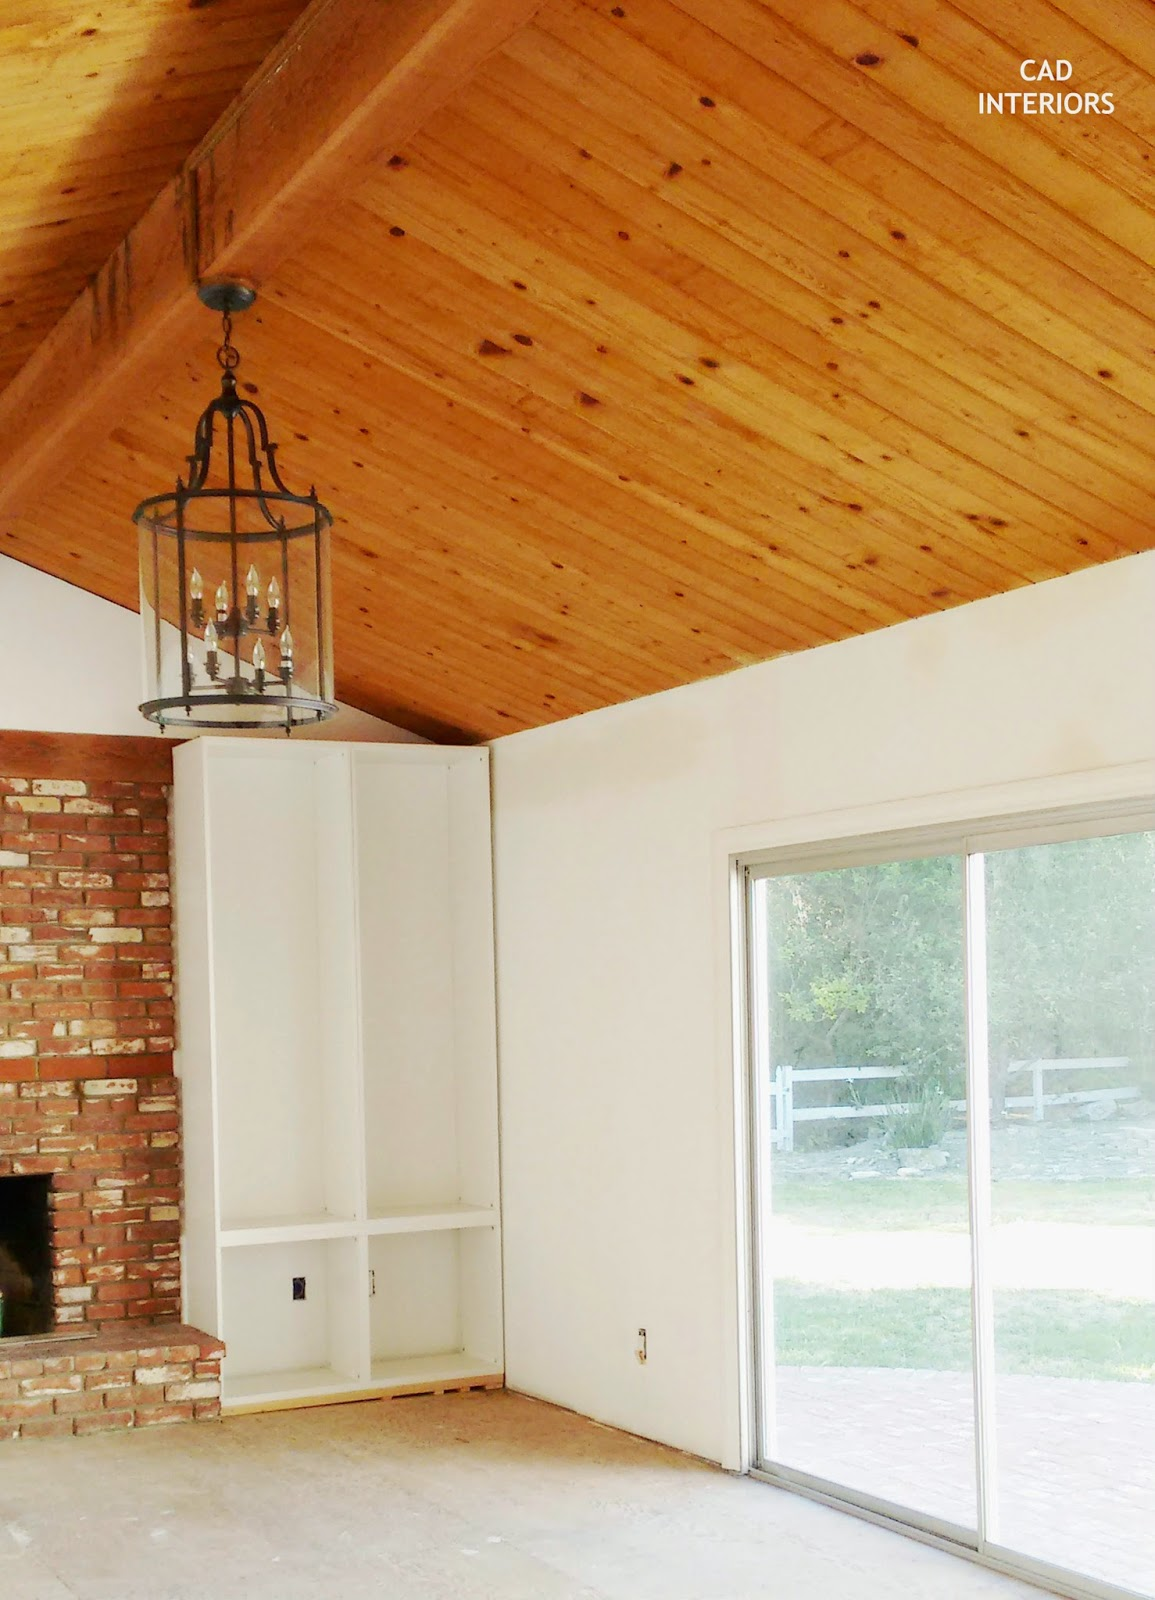 DIY built-in cabinets brick fireplace pendant light fixture wood ceiling beams